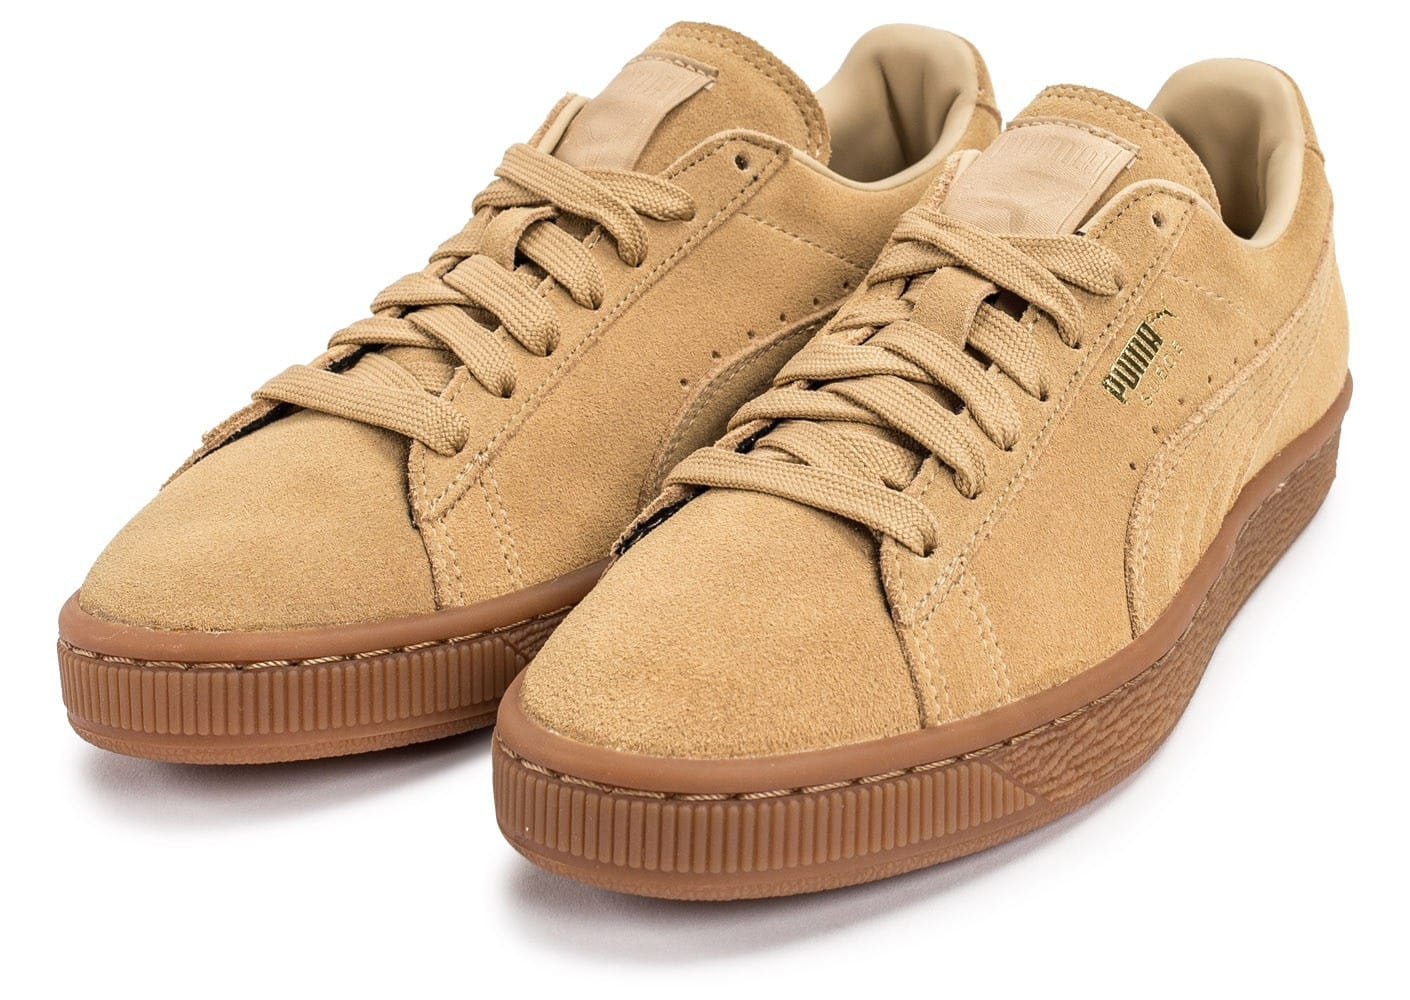 Suede Chaussures 40 Puma Lights Eqk6joqvq Classic Casual